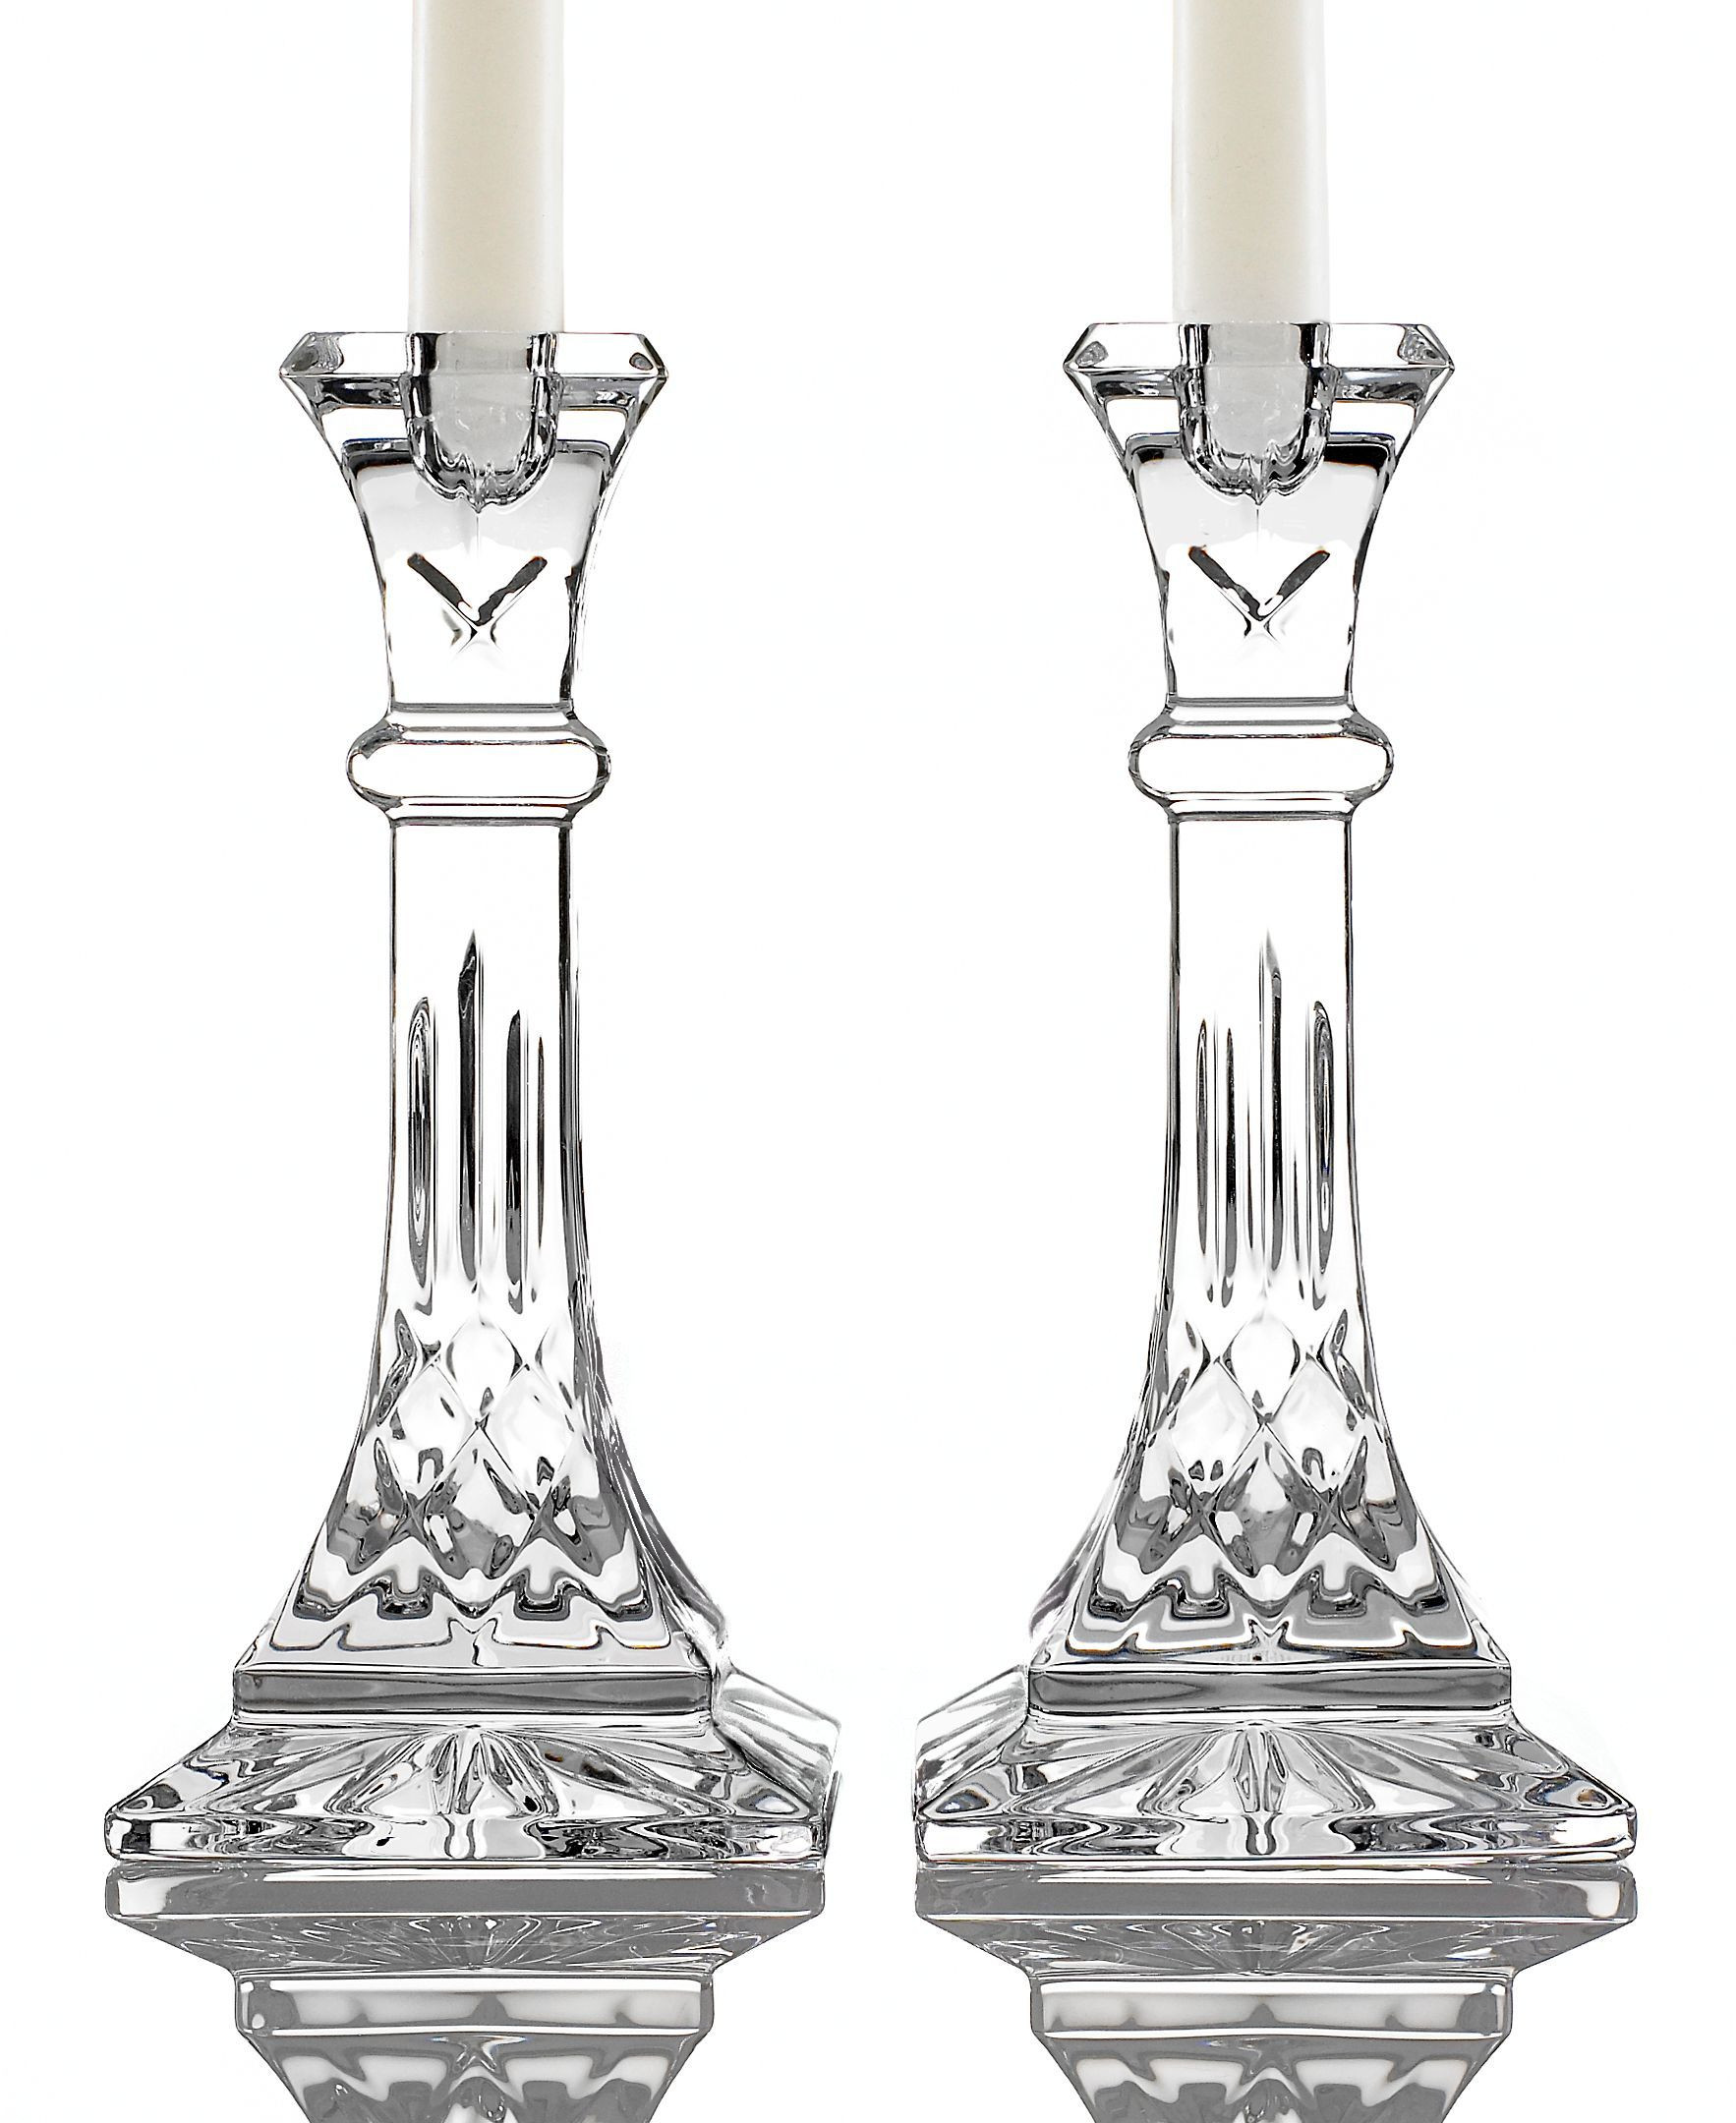 waterford lismore diamond vase of waterford crystal lismore 6 candlestick pair regarding gifts lismore candle holders 8 set of 2